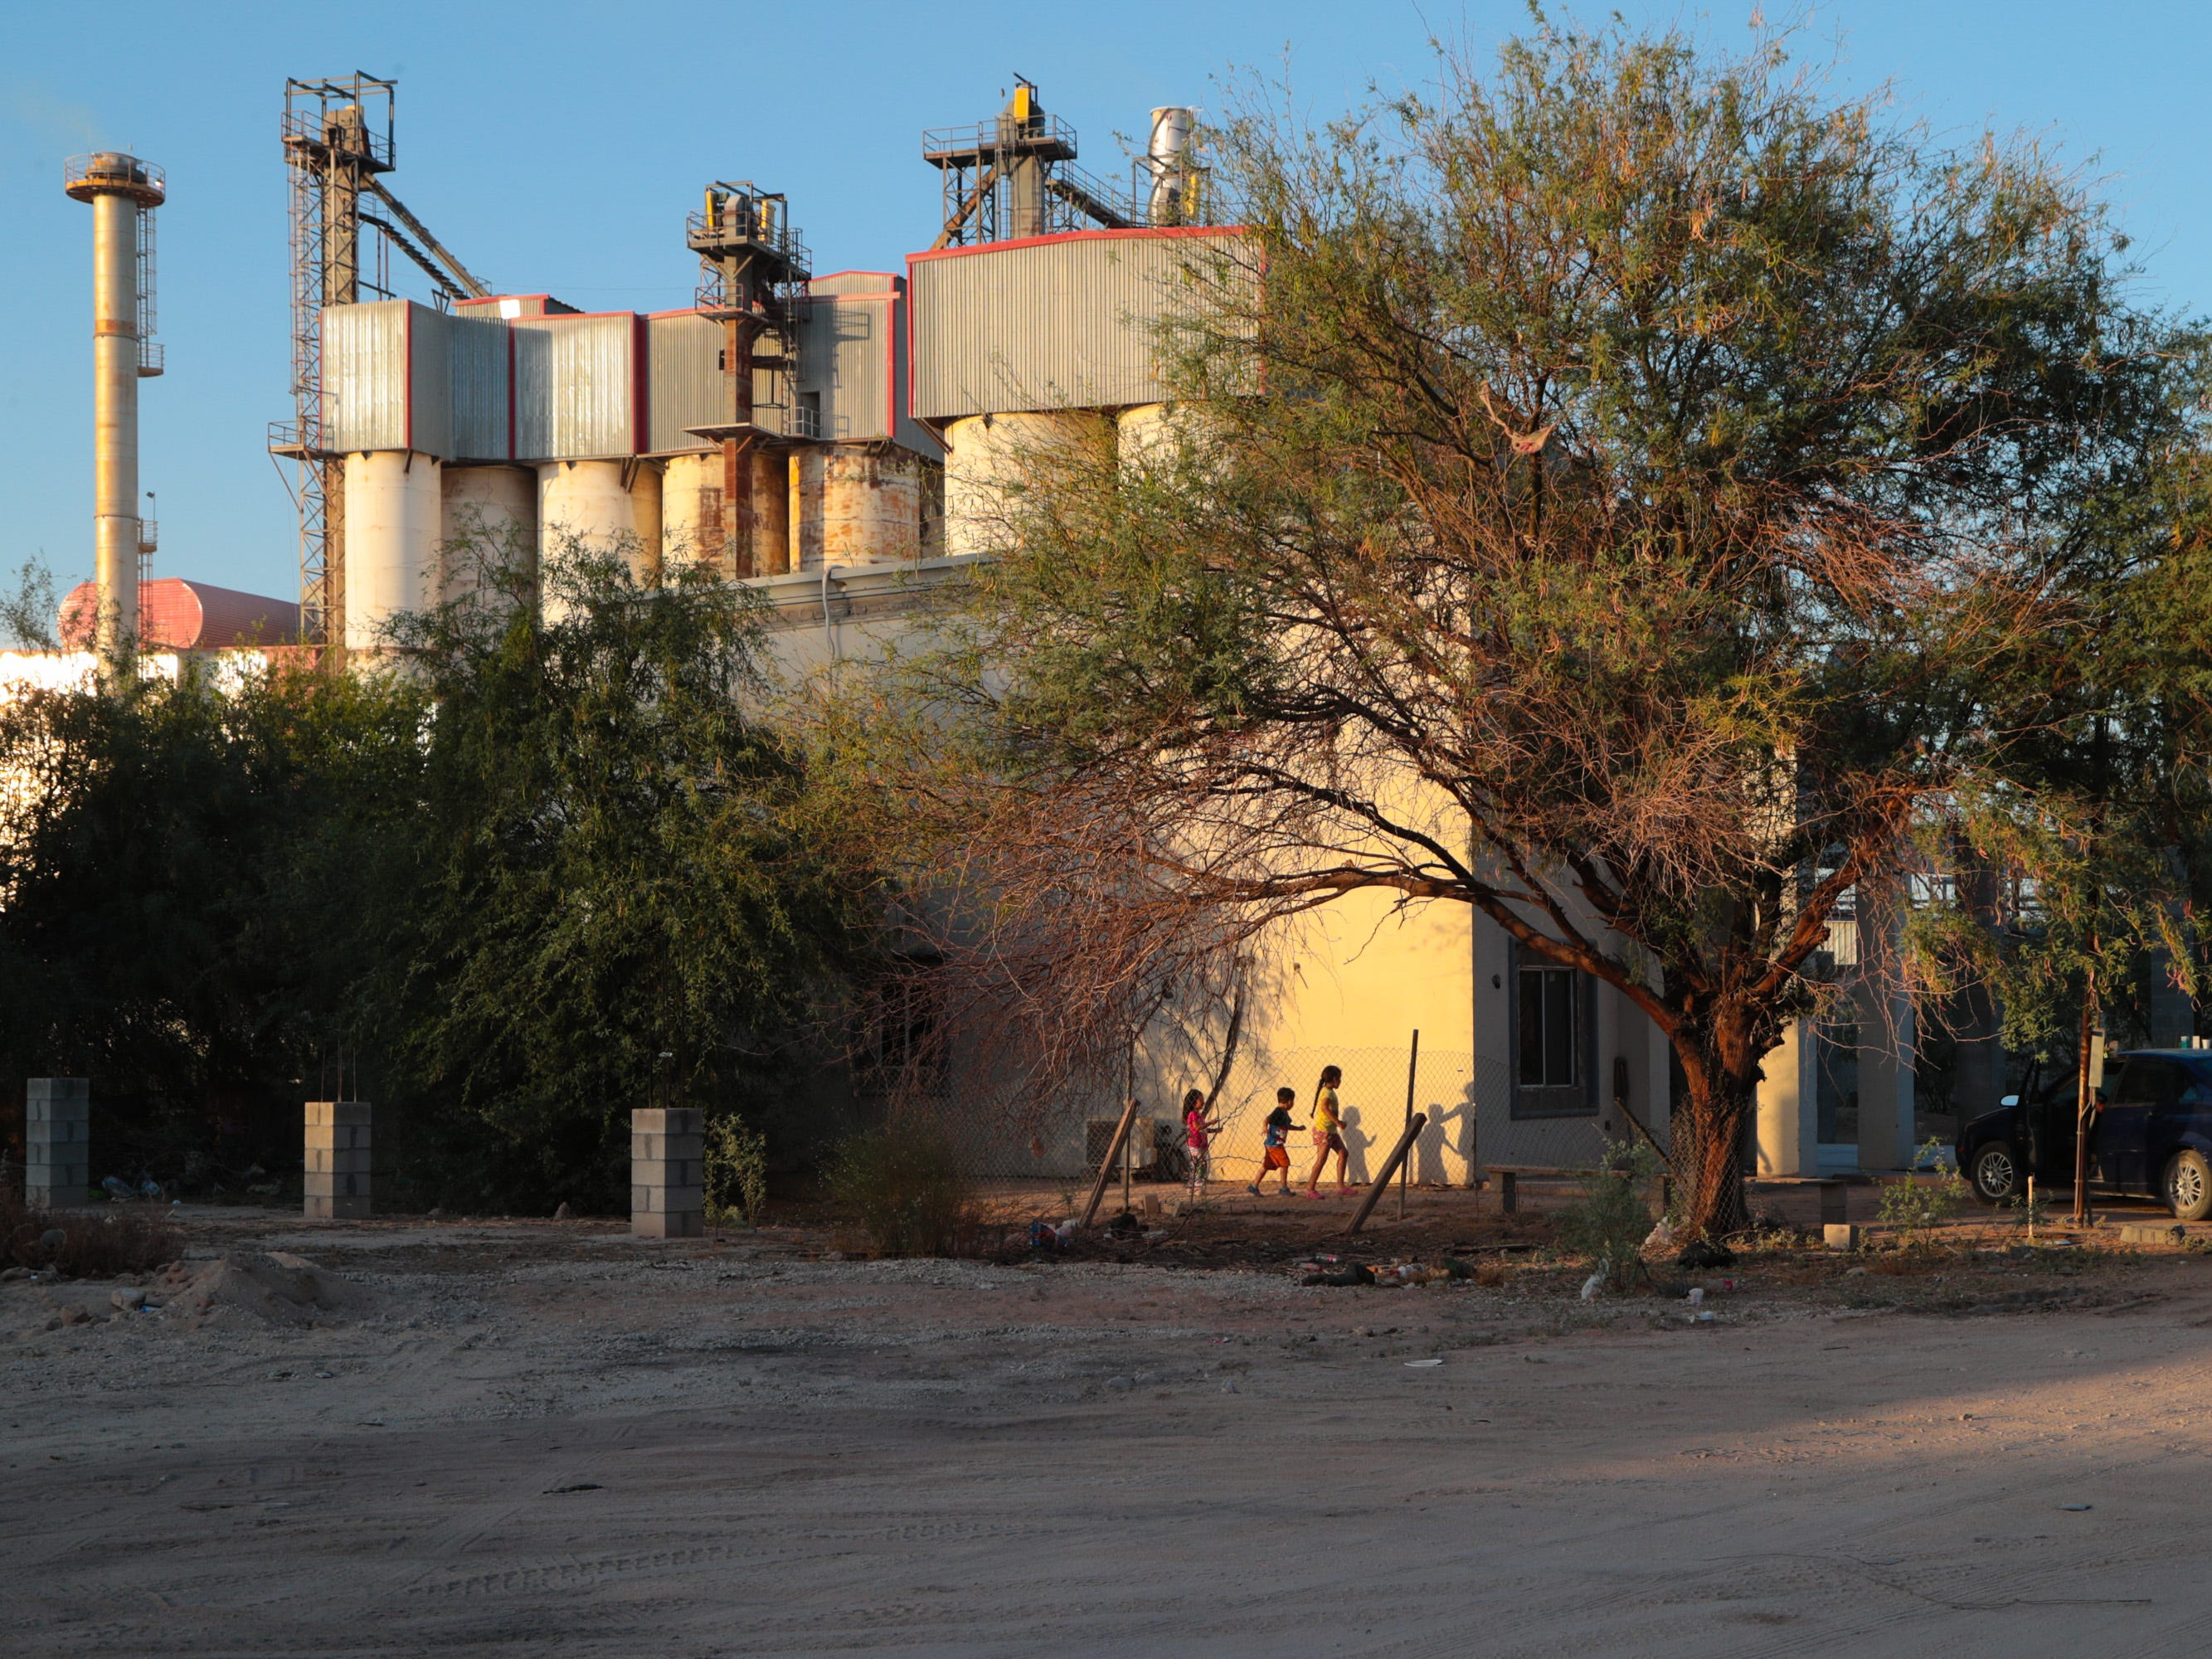 Children play outside a home in Ejido el Choropo, a neighborhood next to the Fevisa factory, just south of Mexicali.